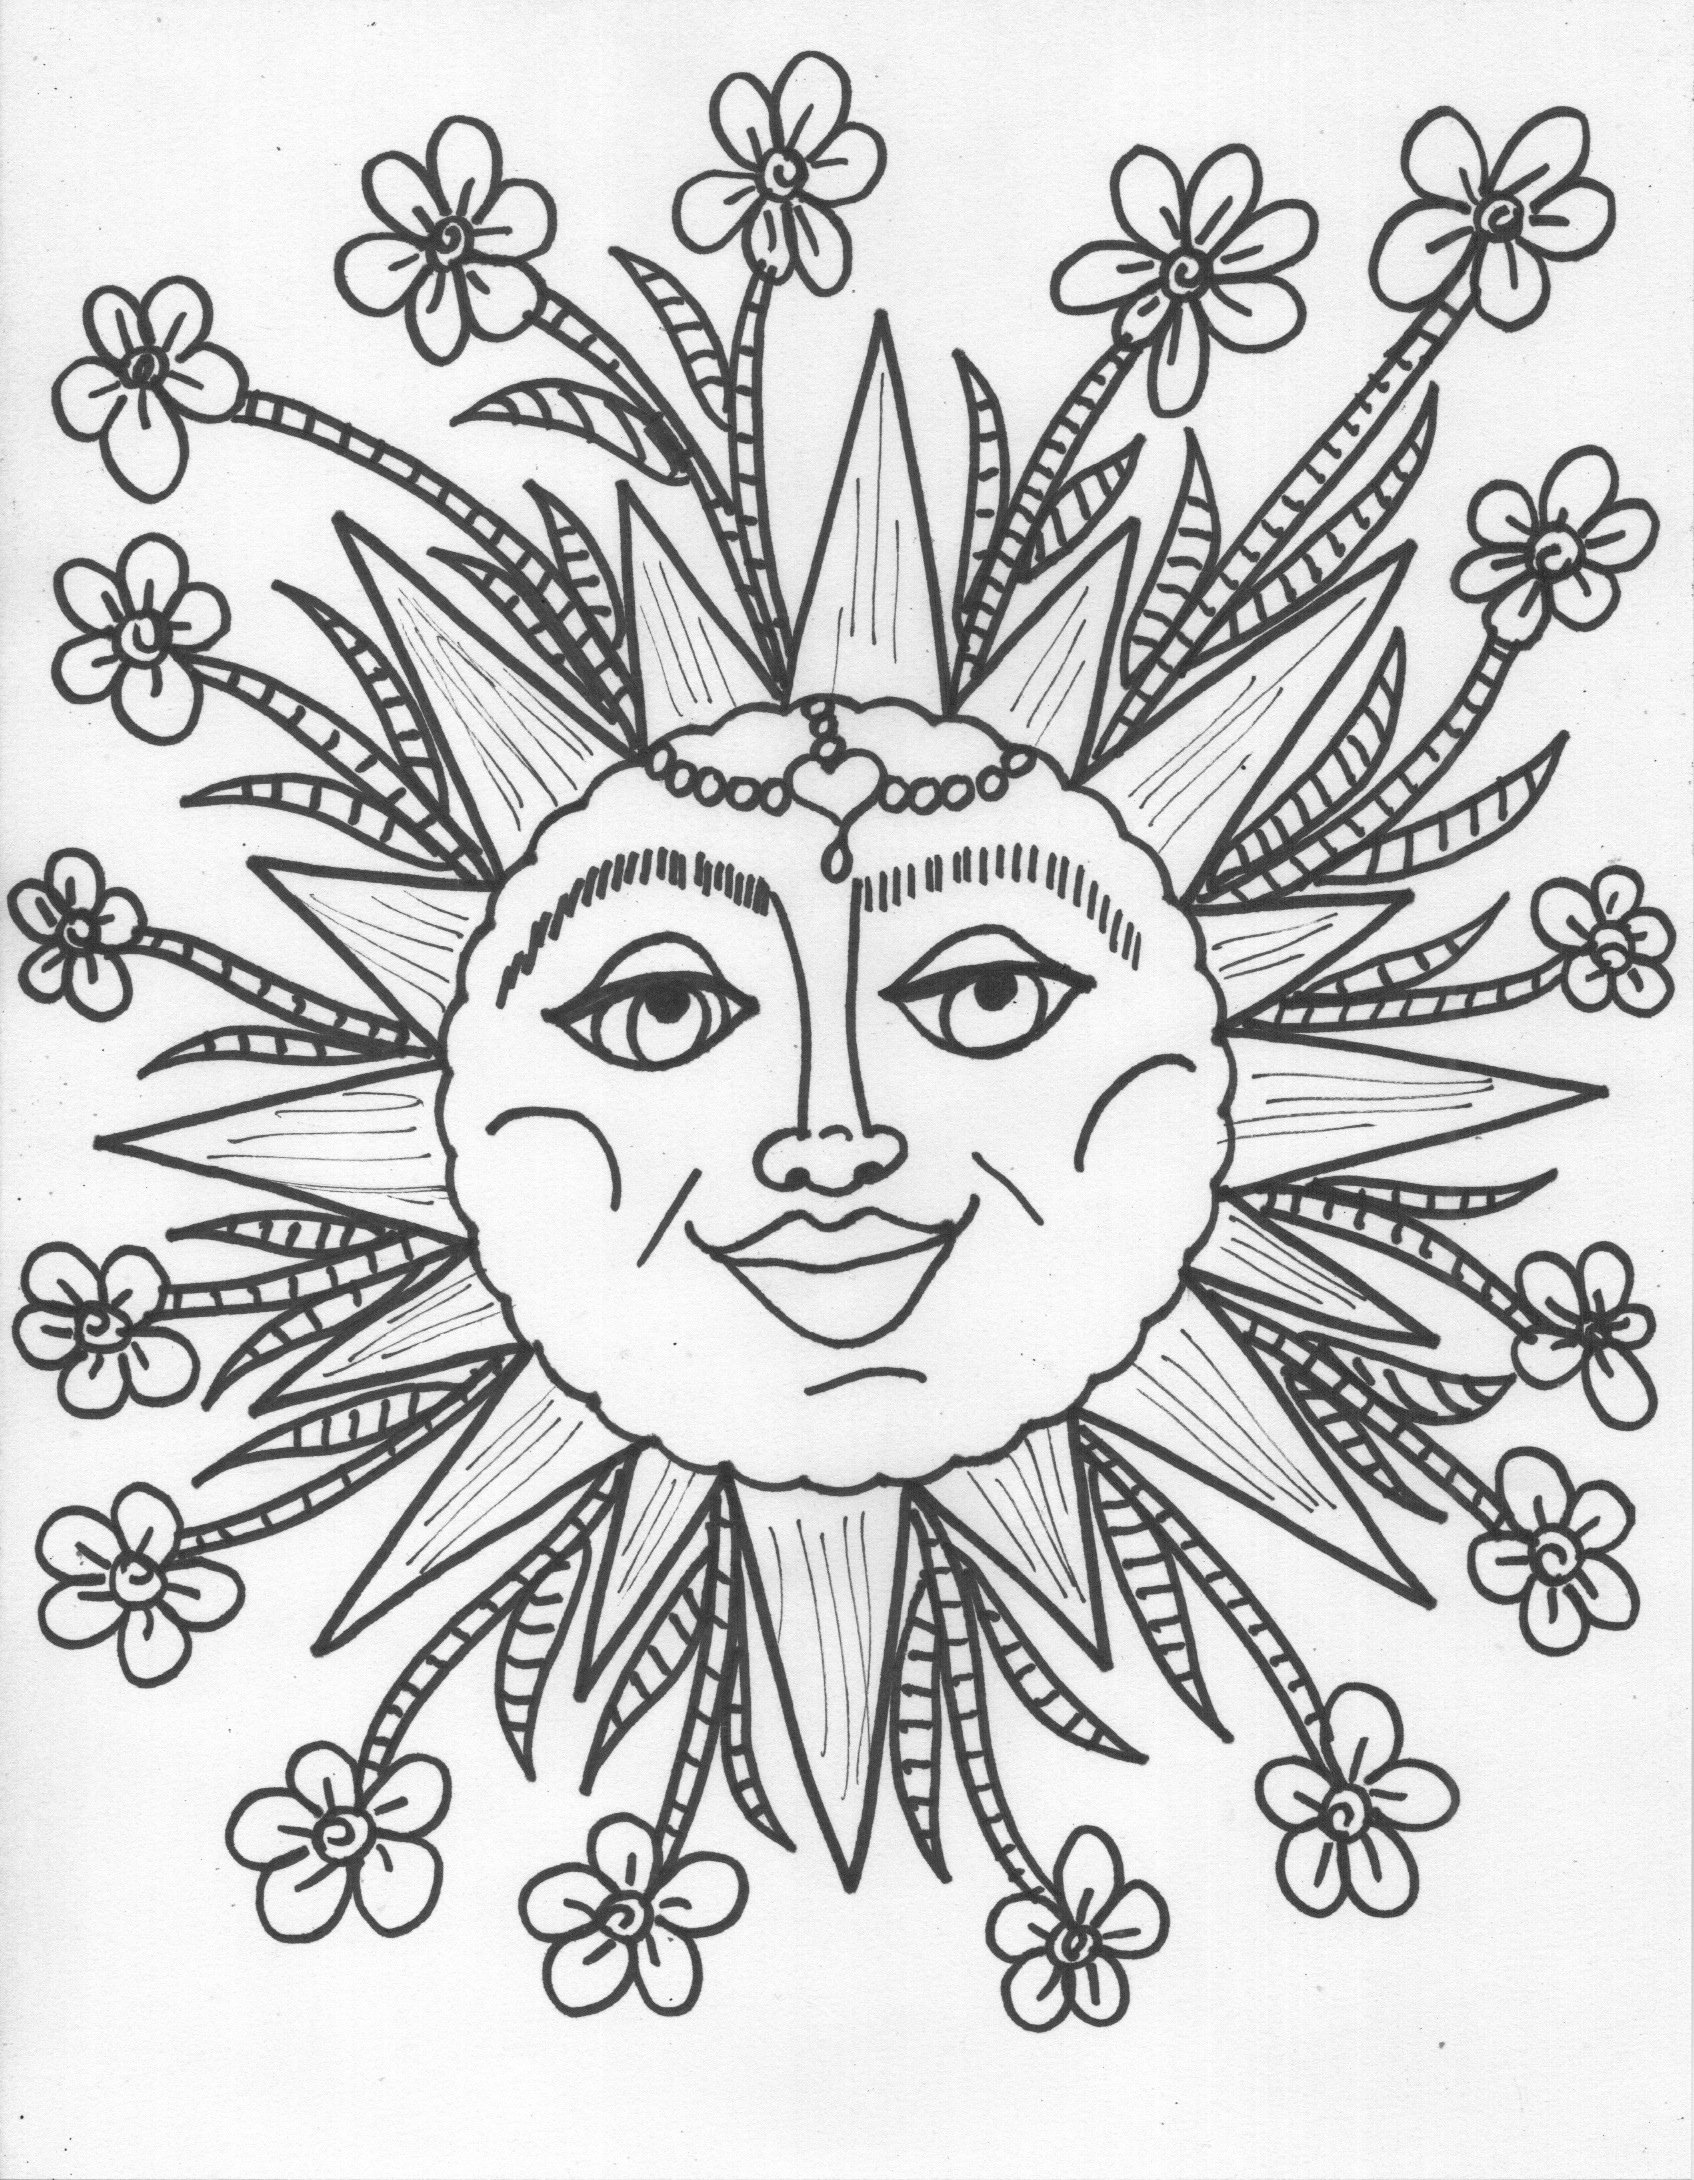 trippy sun and moon trippy sun and moon clipart 20 free cliparts download moon sun trippy and